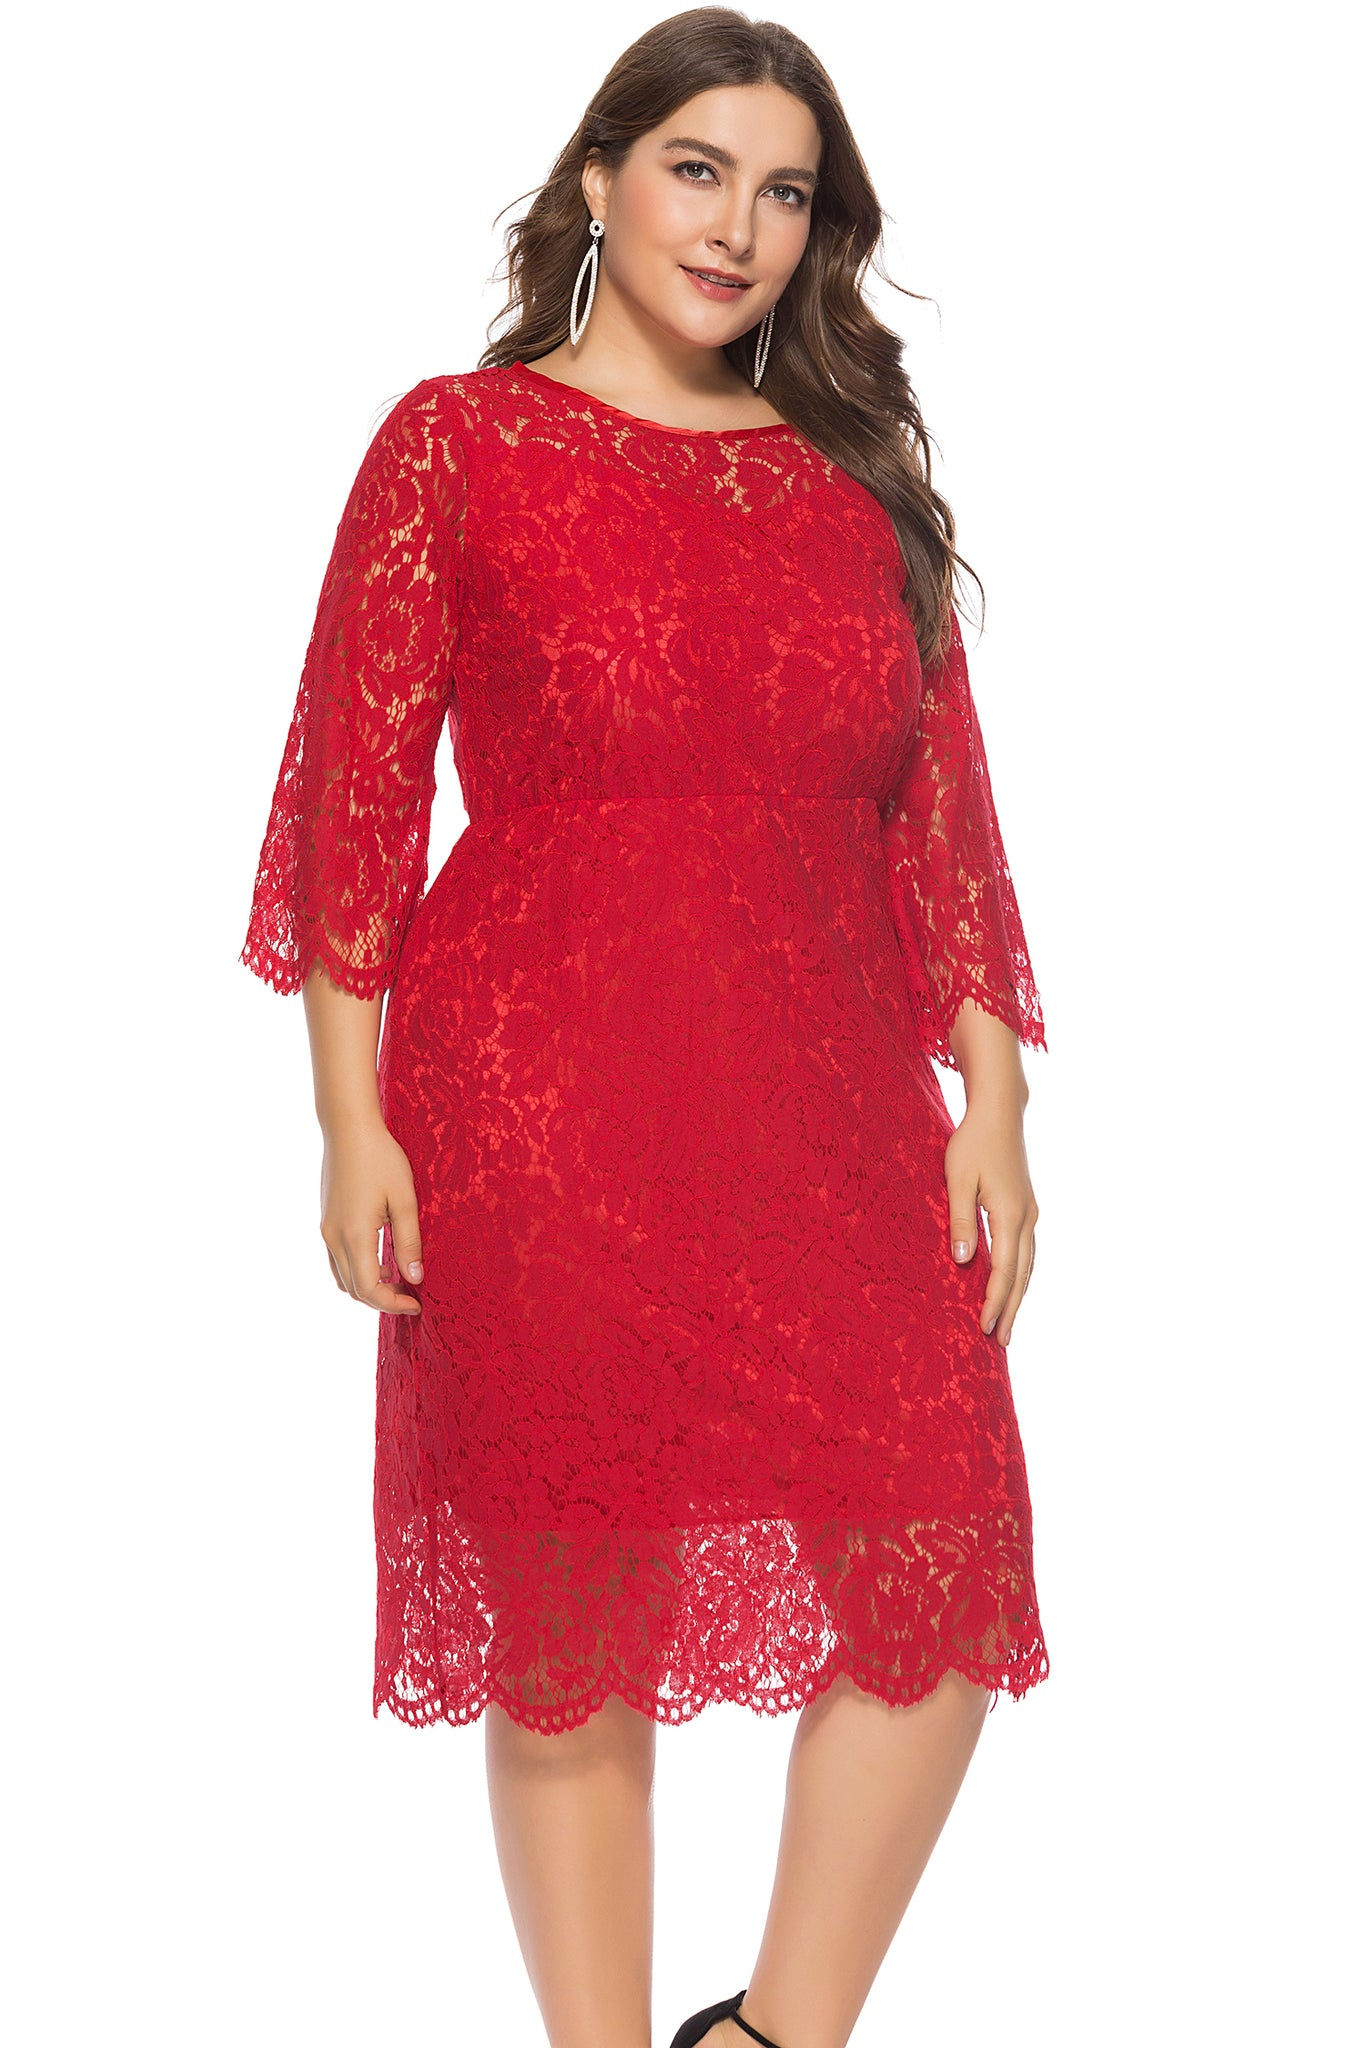 Plus Size Red Dress with 3/4 Sleeves  - Zaida Fashions